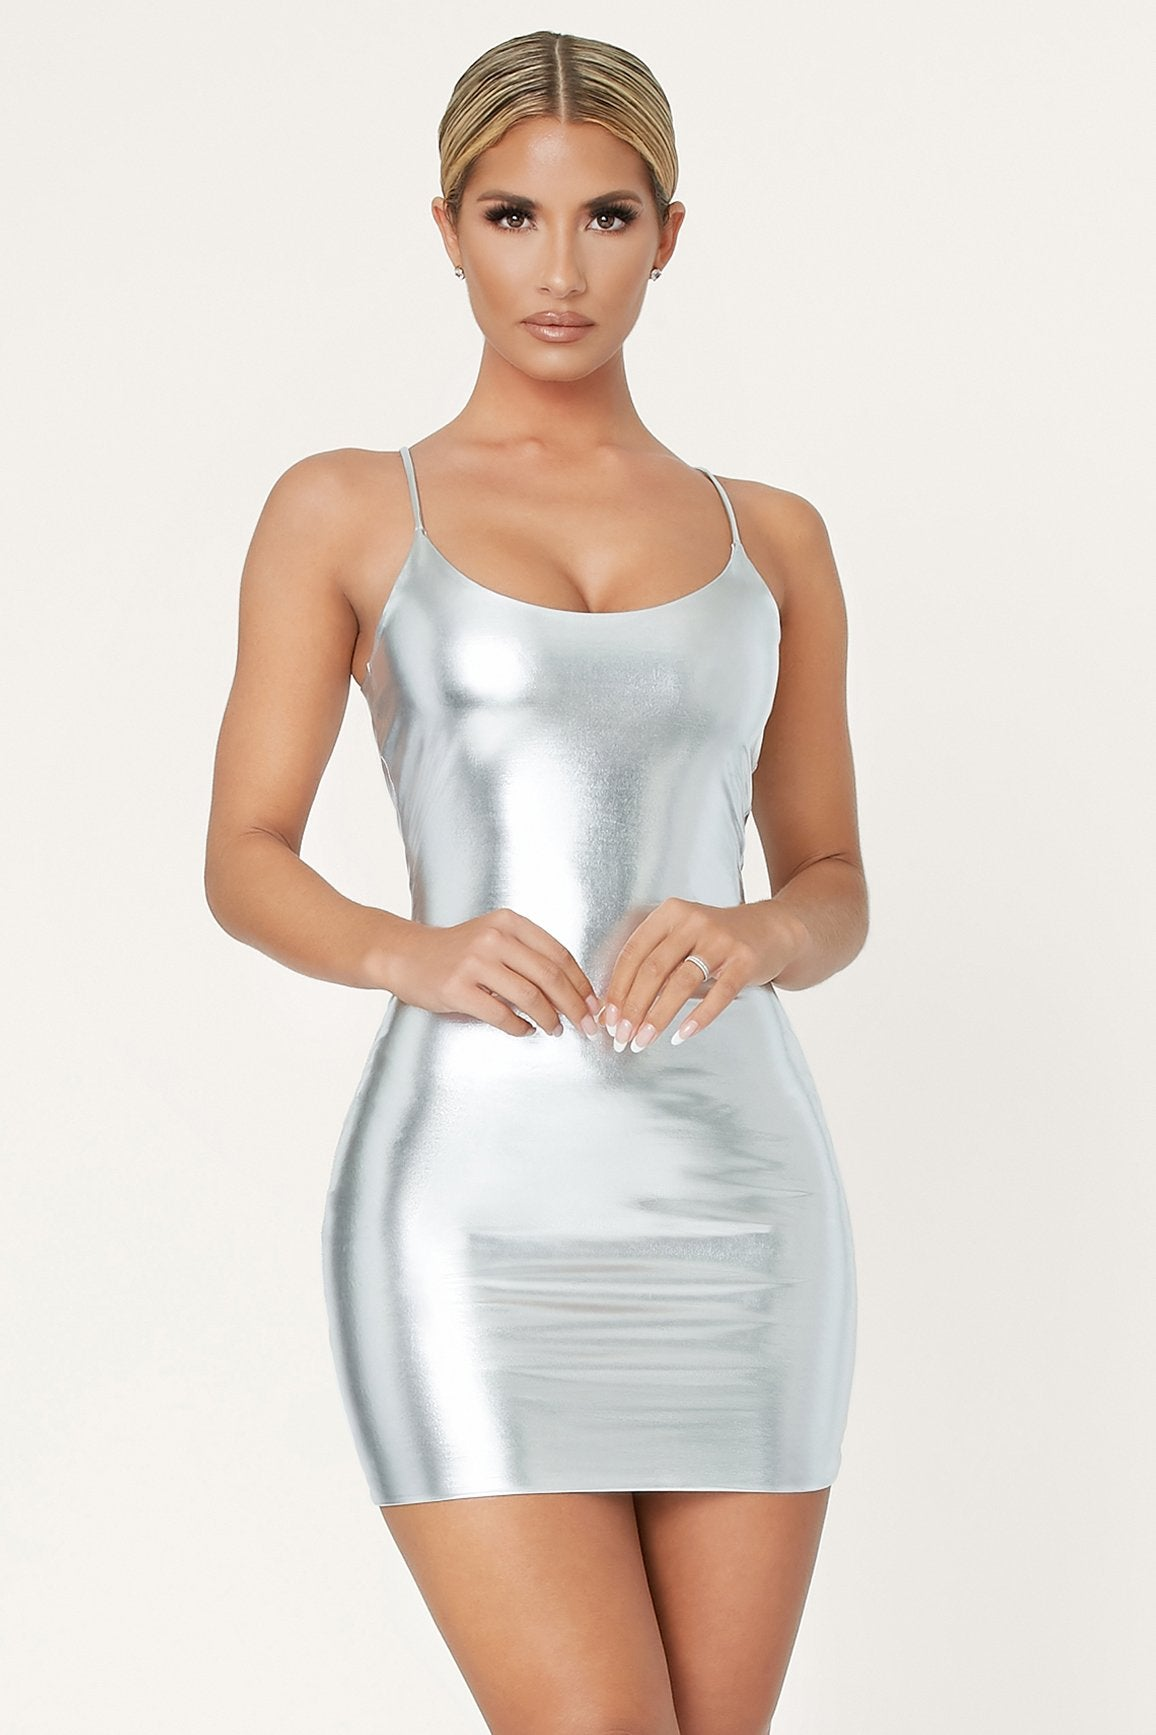 Zumi Metallic Bodycon Mini Dress - Silver - MESHKI